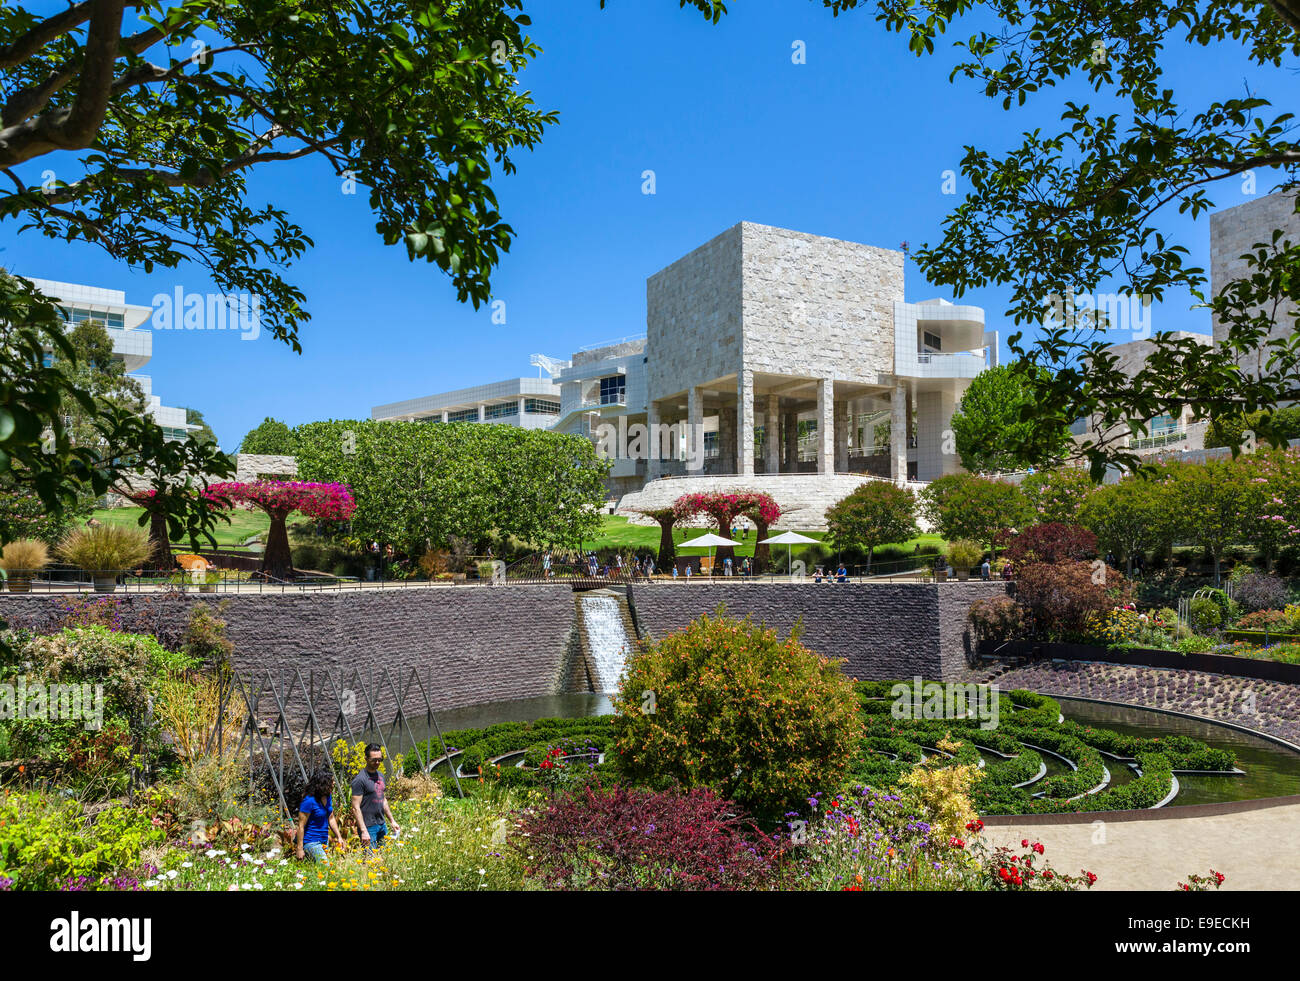 The Getty Center museum complex on a hilltop overlooking the city of Los Angeles, Brentwood, Los Angeles, California, - Stock Image